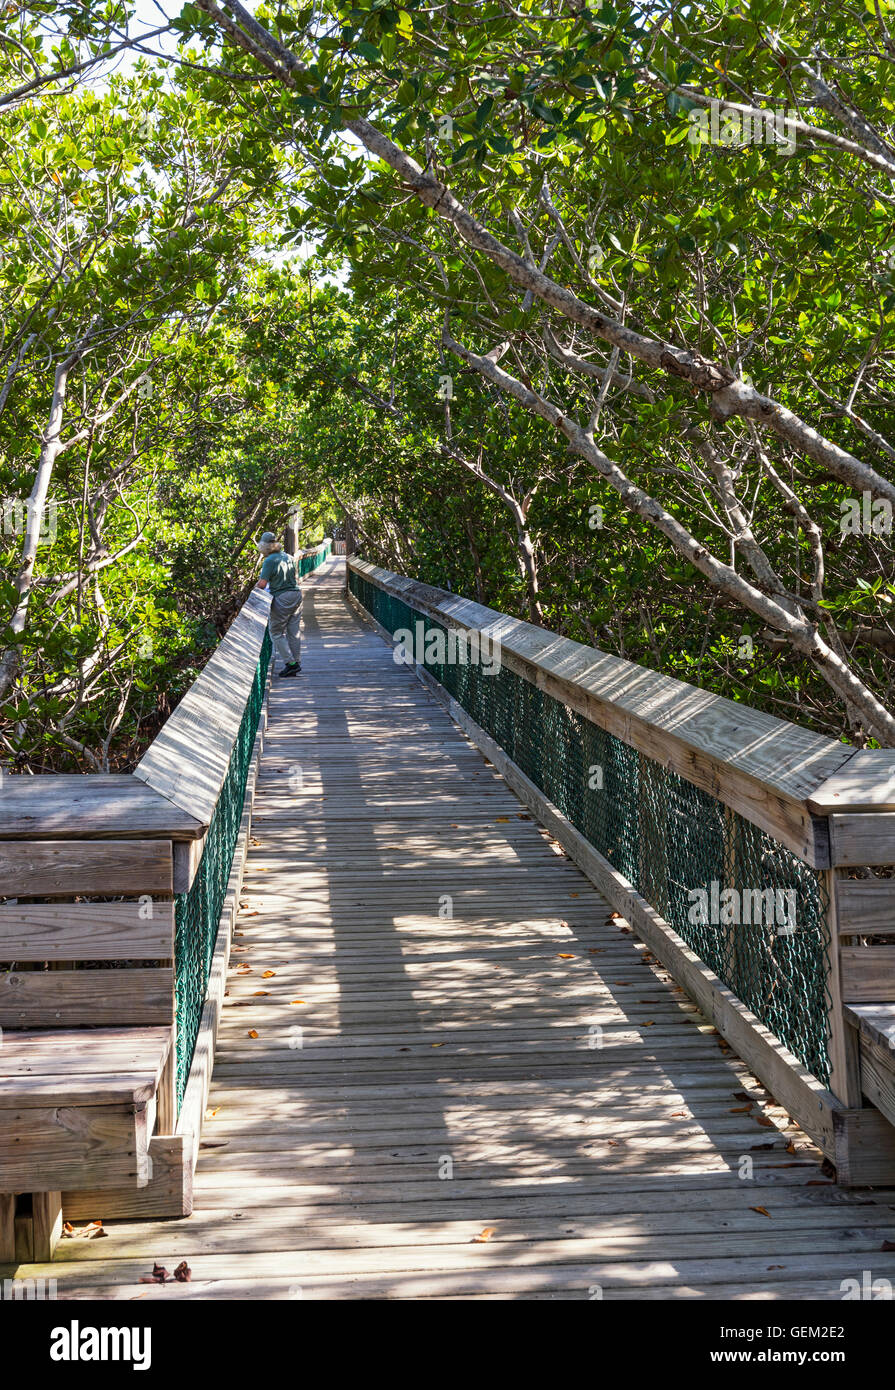 Florida Keys, Long Key State Park, Golden Orb Nature Trail, boardwalk through mangrove forest - Stock Image